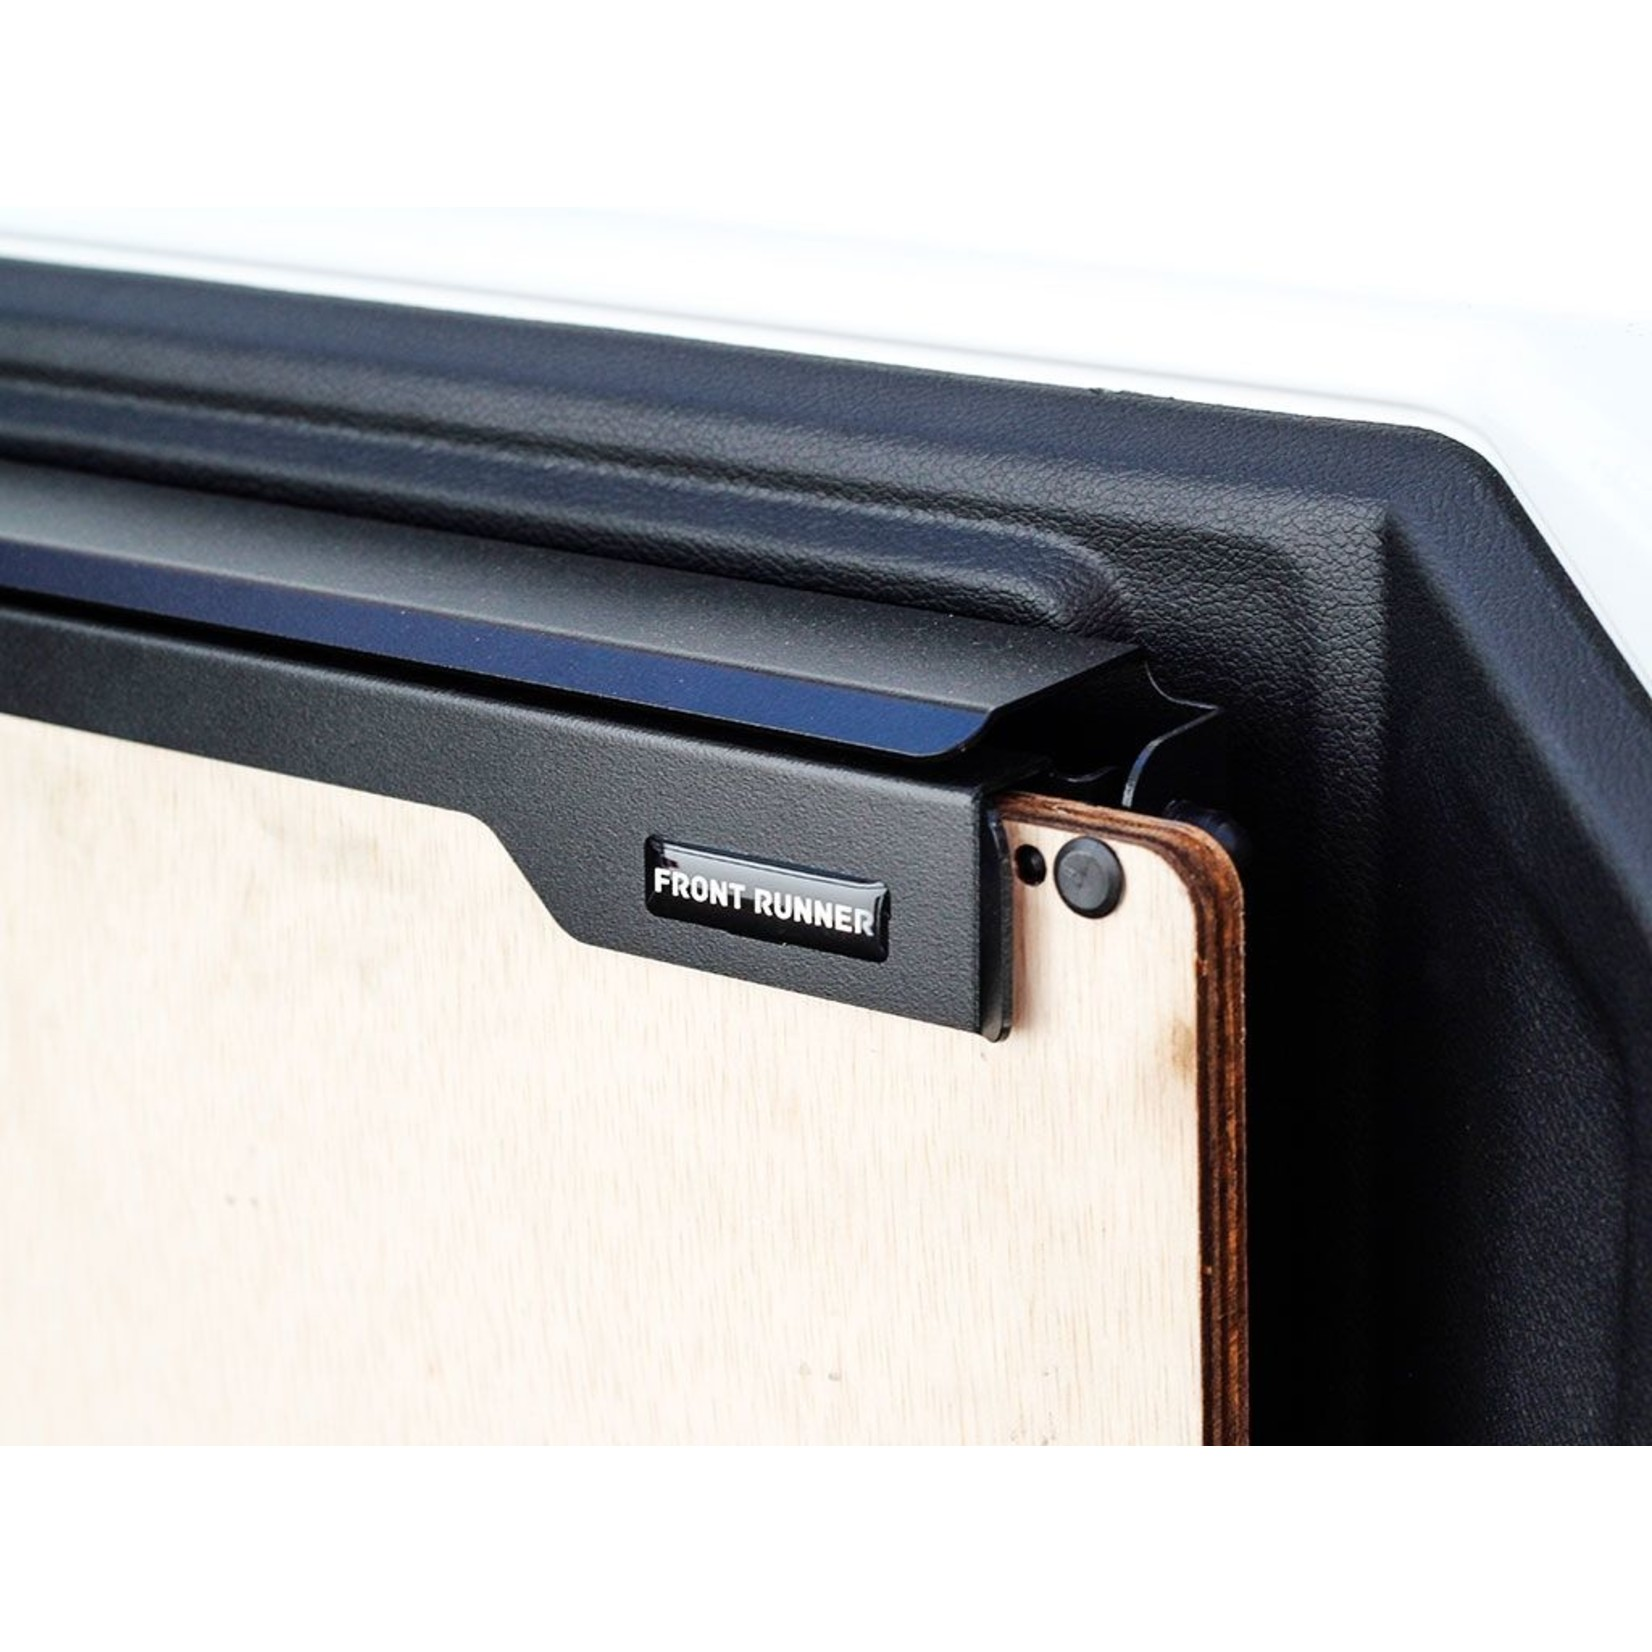 Front Runner Front Runner Wood Tray Extension for Drop Down Tailgate Table